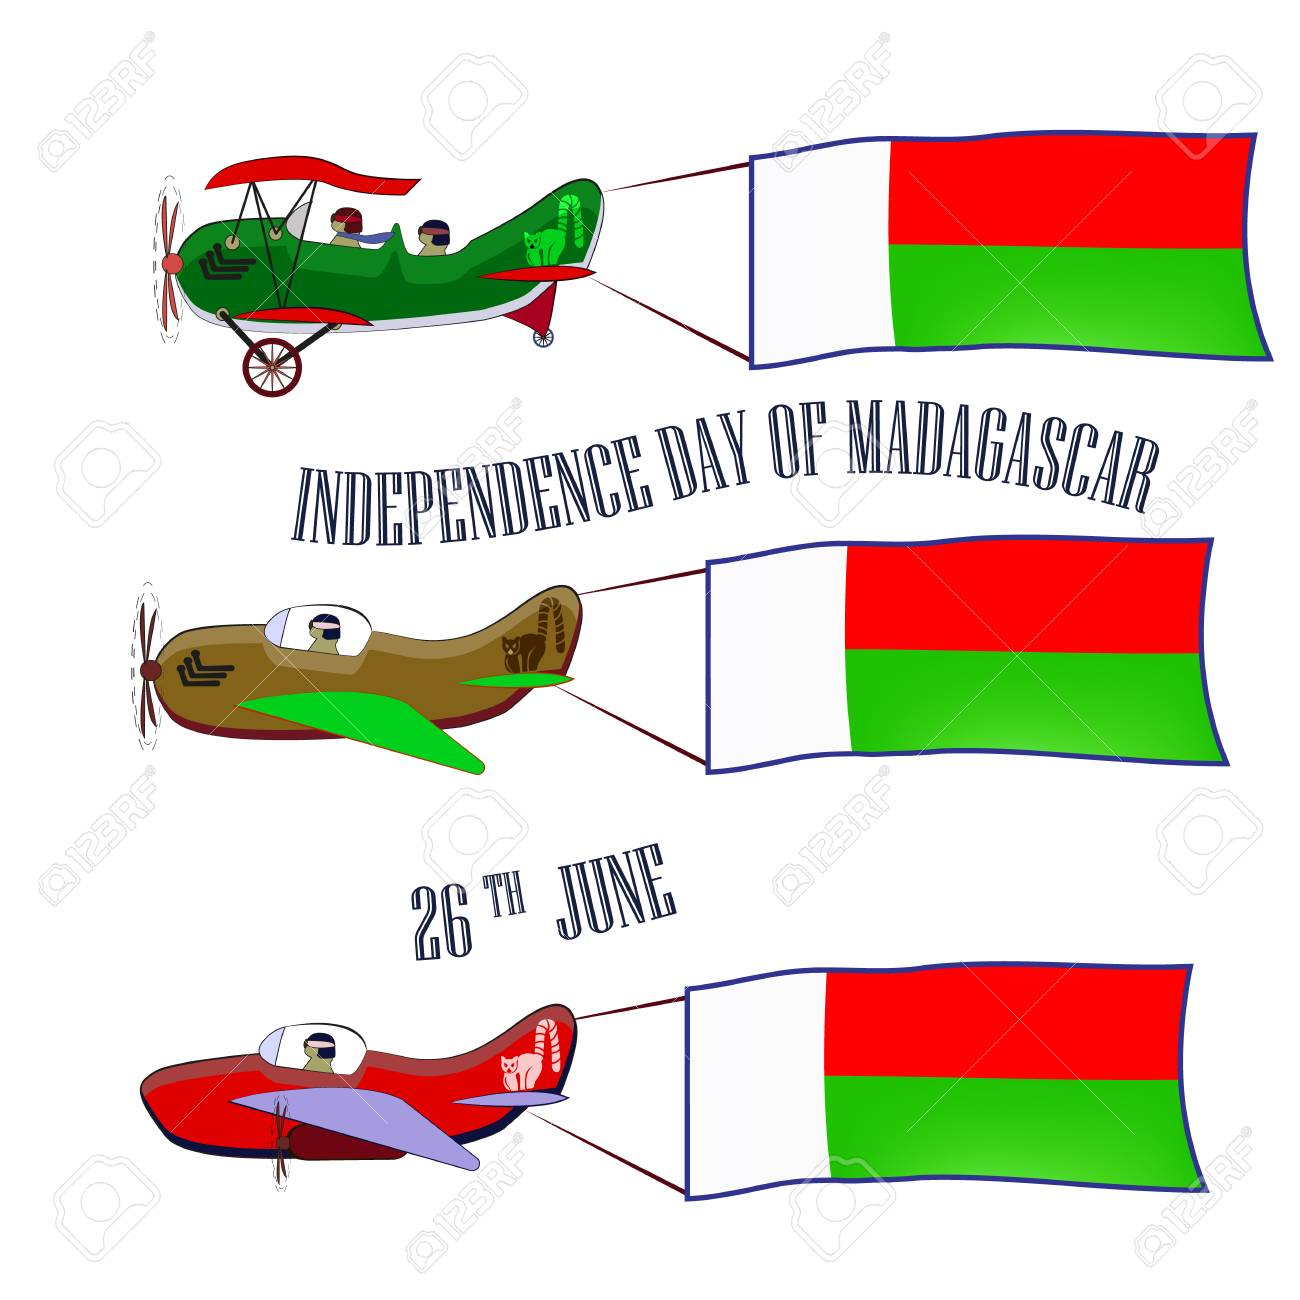 Independence Day of Madagascar, set with three planes and national flags on an isolated background - 103984245